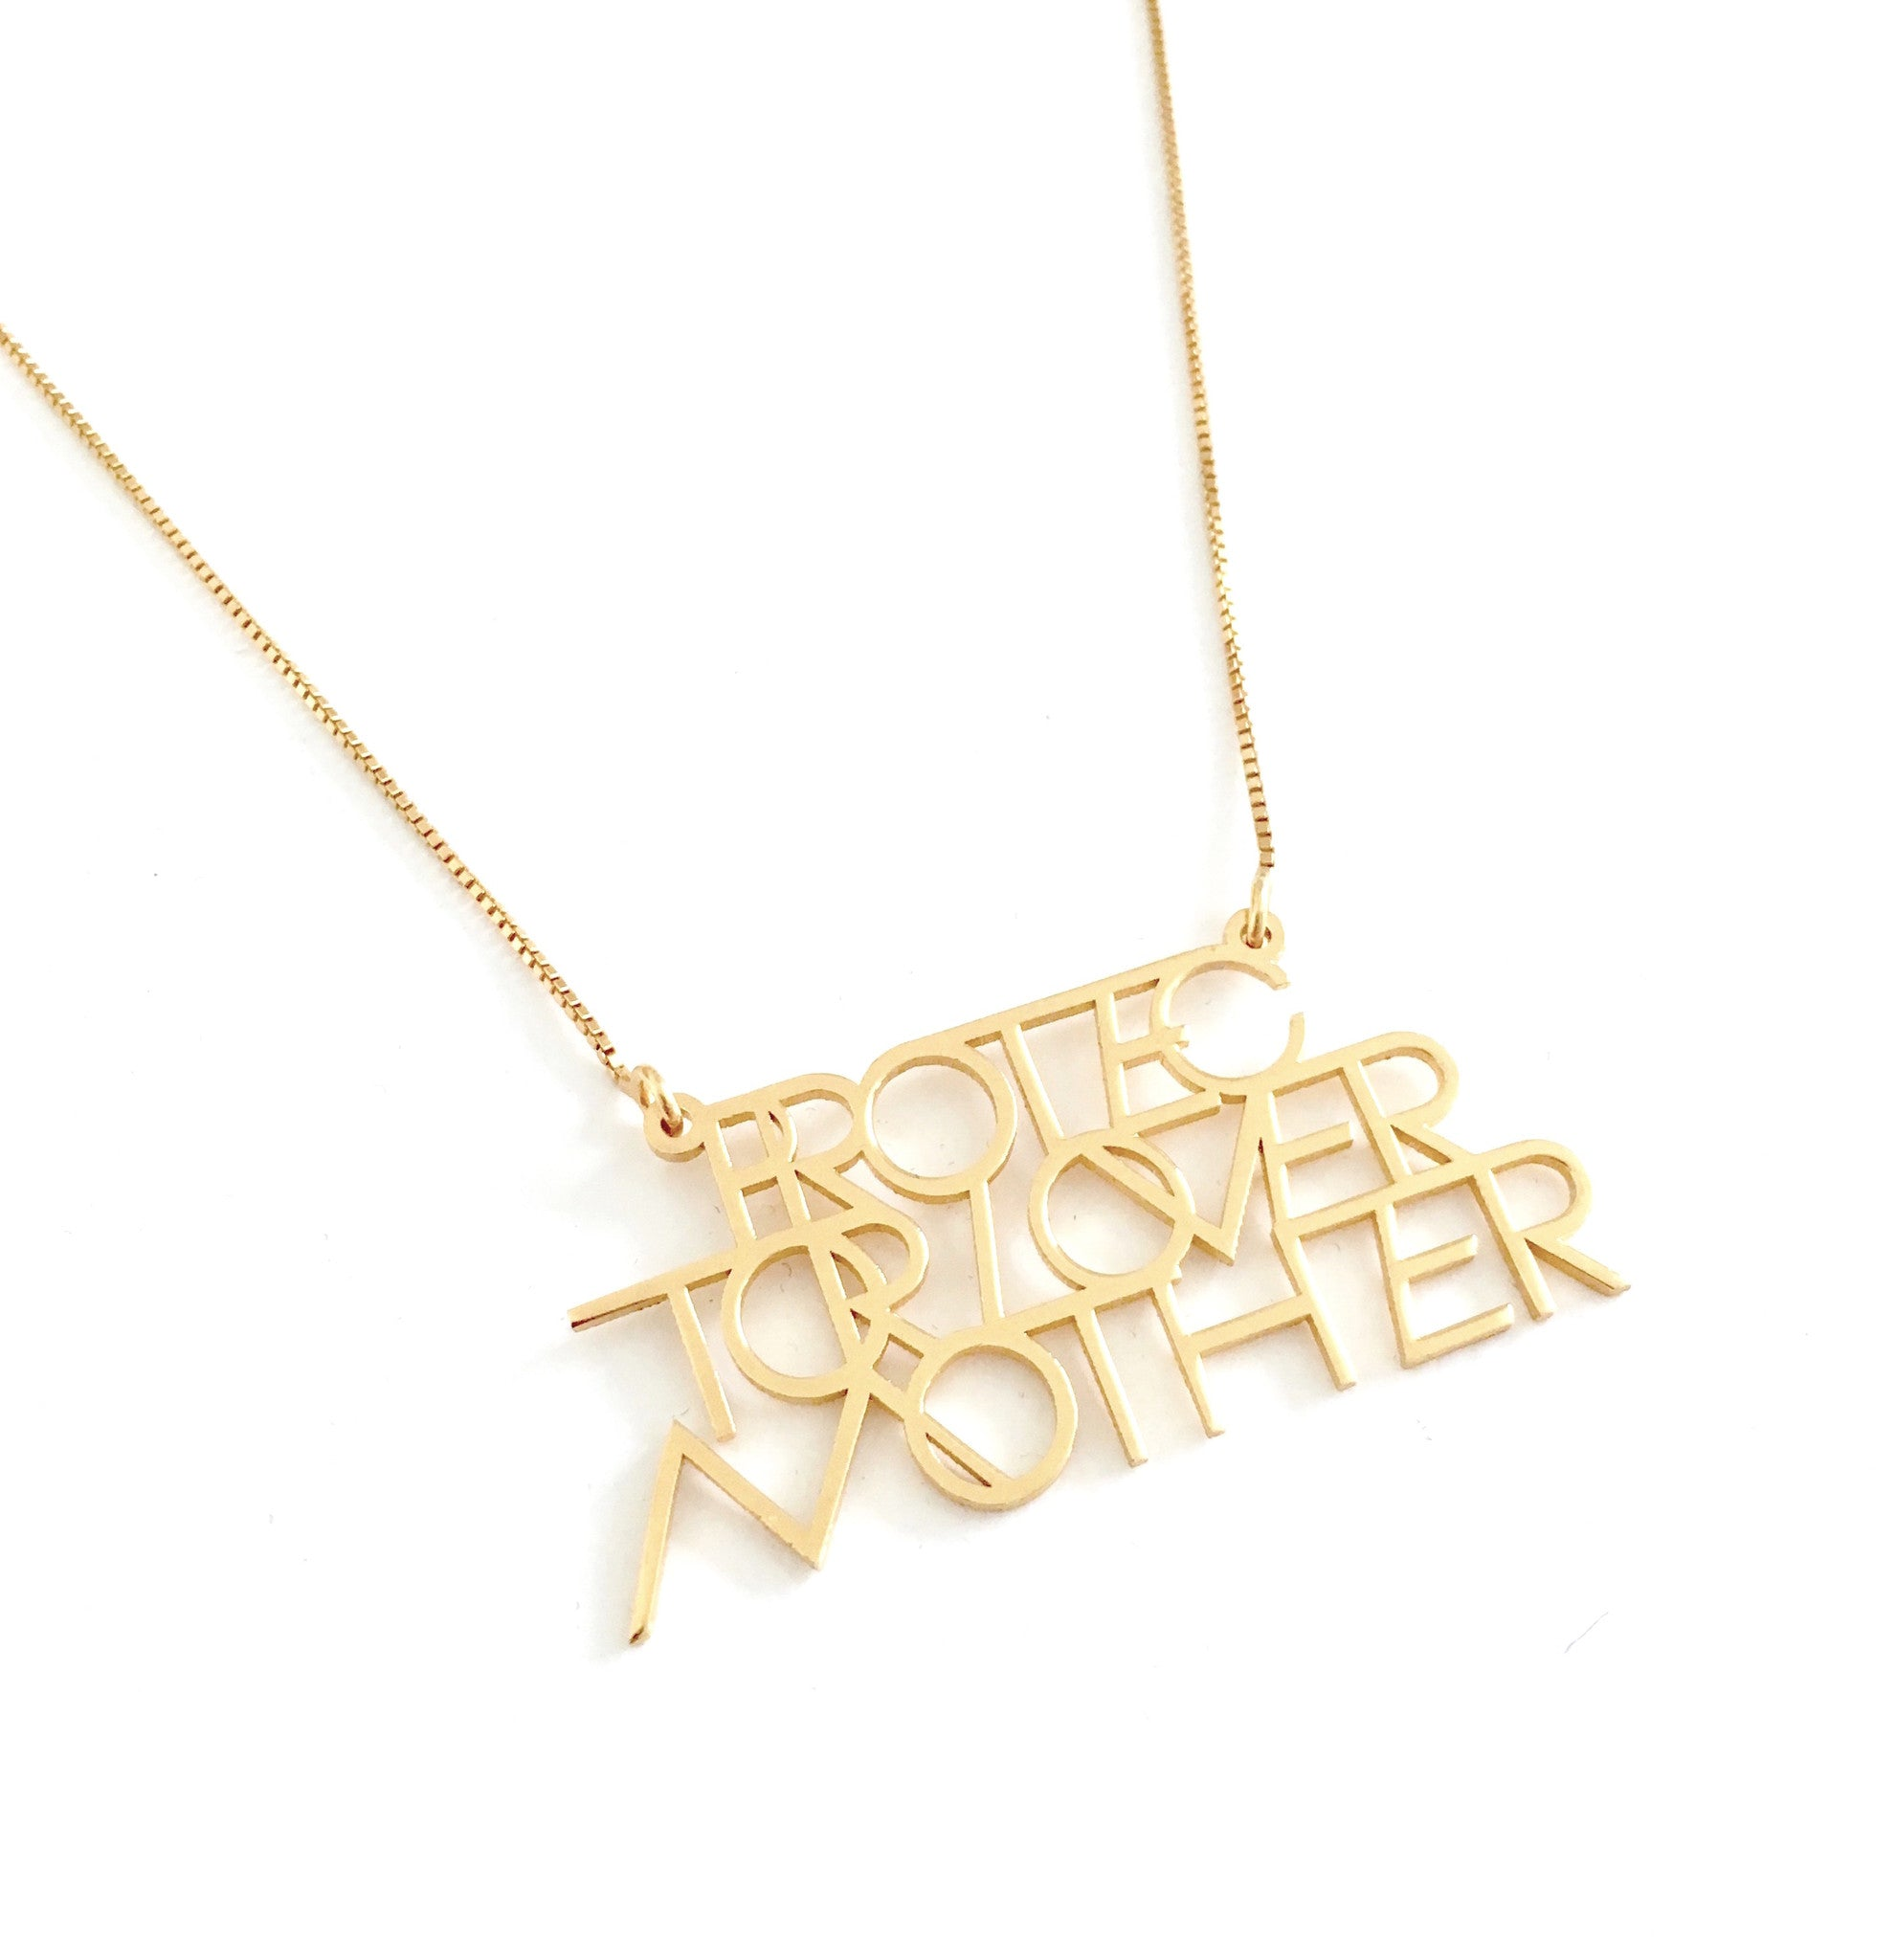 frasier crossed stoned necklace star sterling trendz blue lover product planet lovers